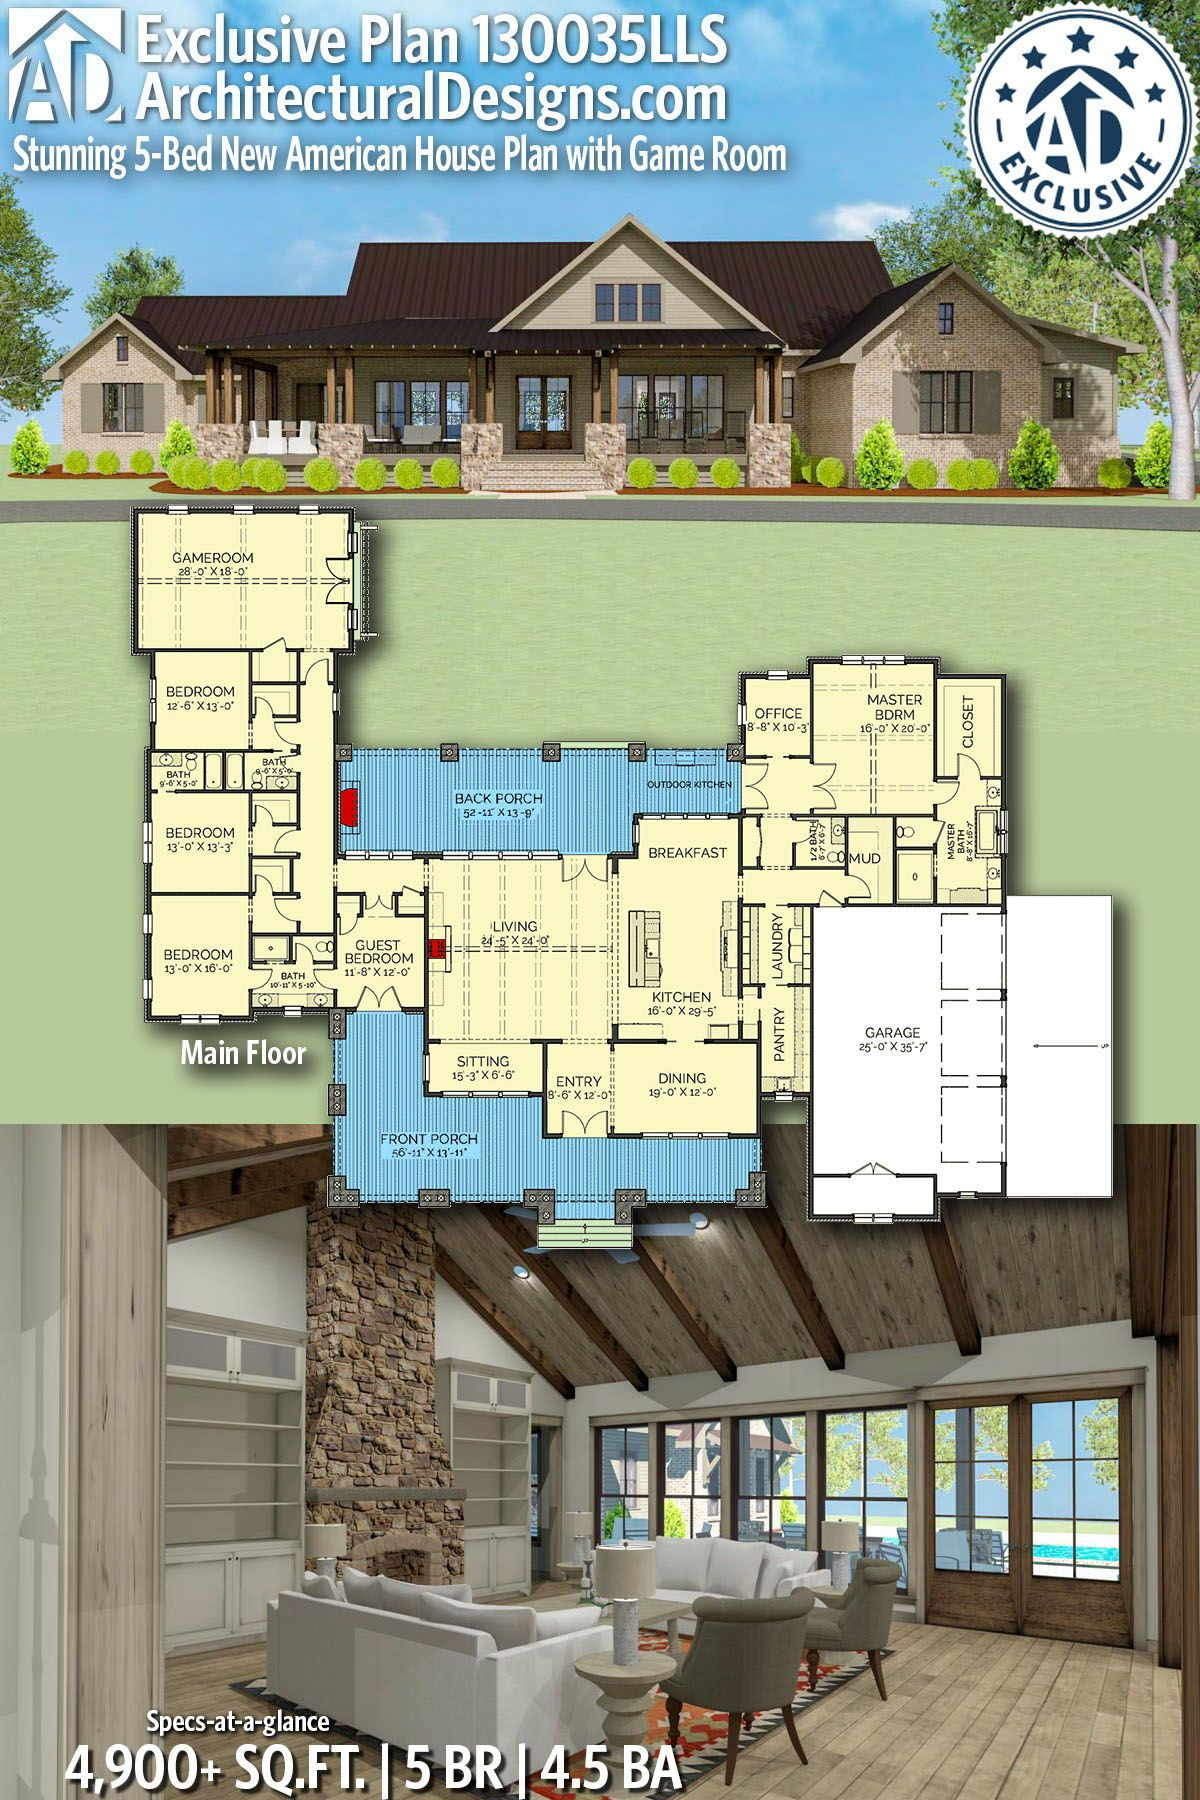 Plan 130035lls Stunning 5 Bed New American House Plan With Game Room House Plans American Houses Dream House Plans